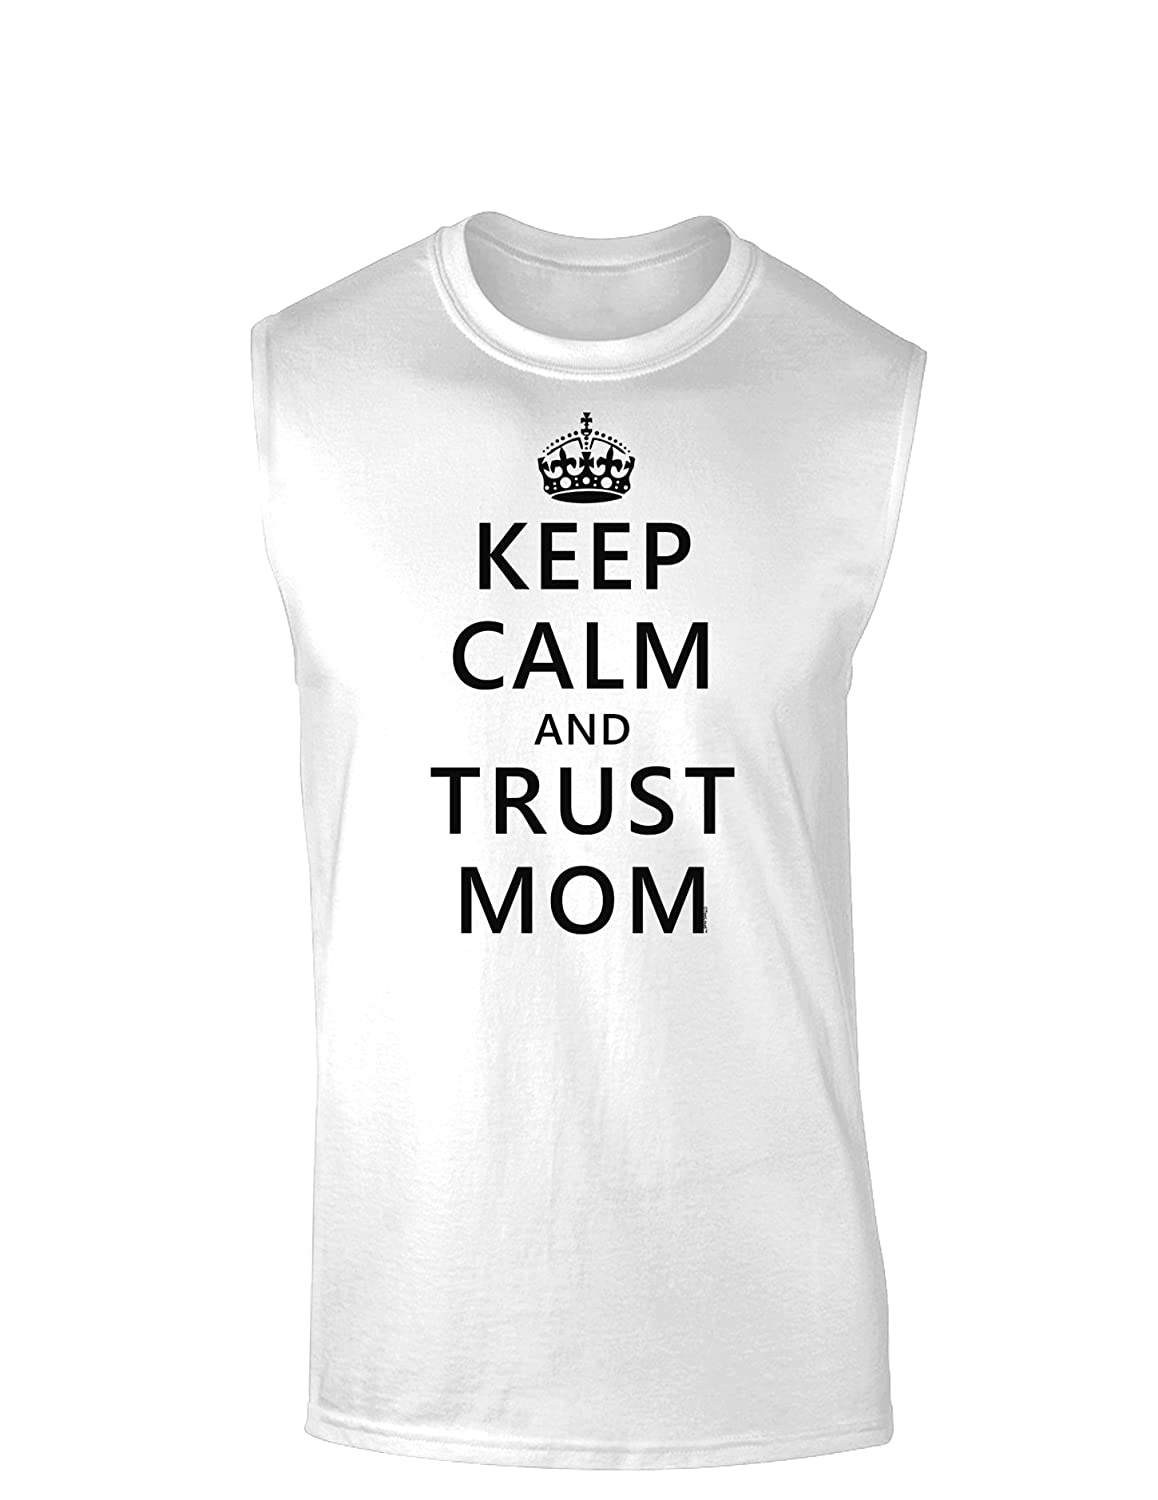 TooLoud Keep Calm and Trust Mom Muscle Shirt